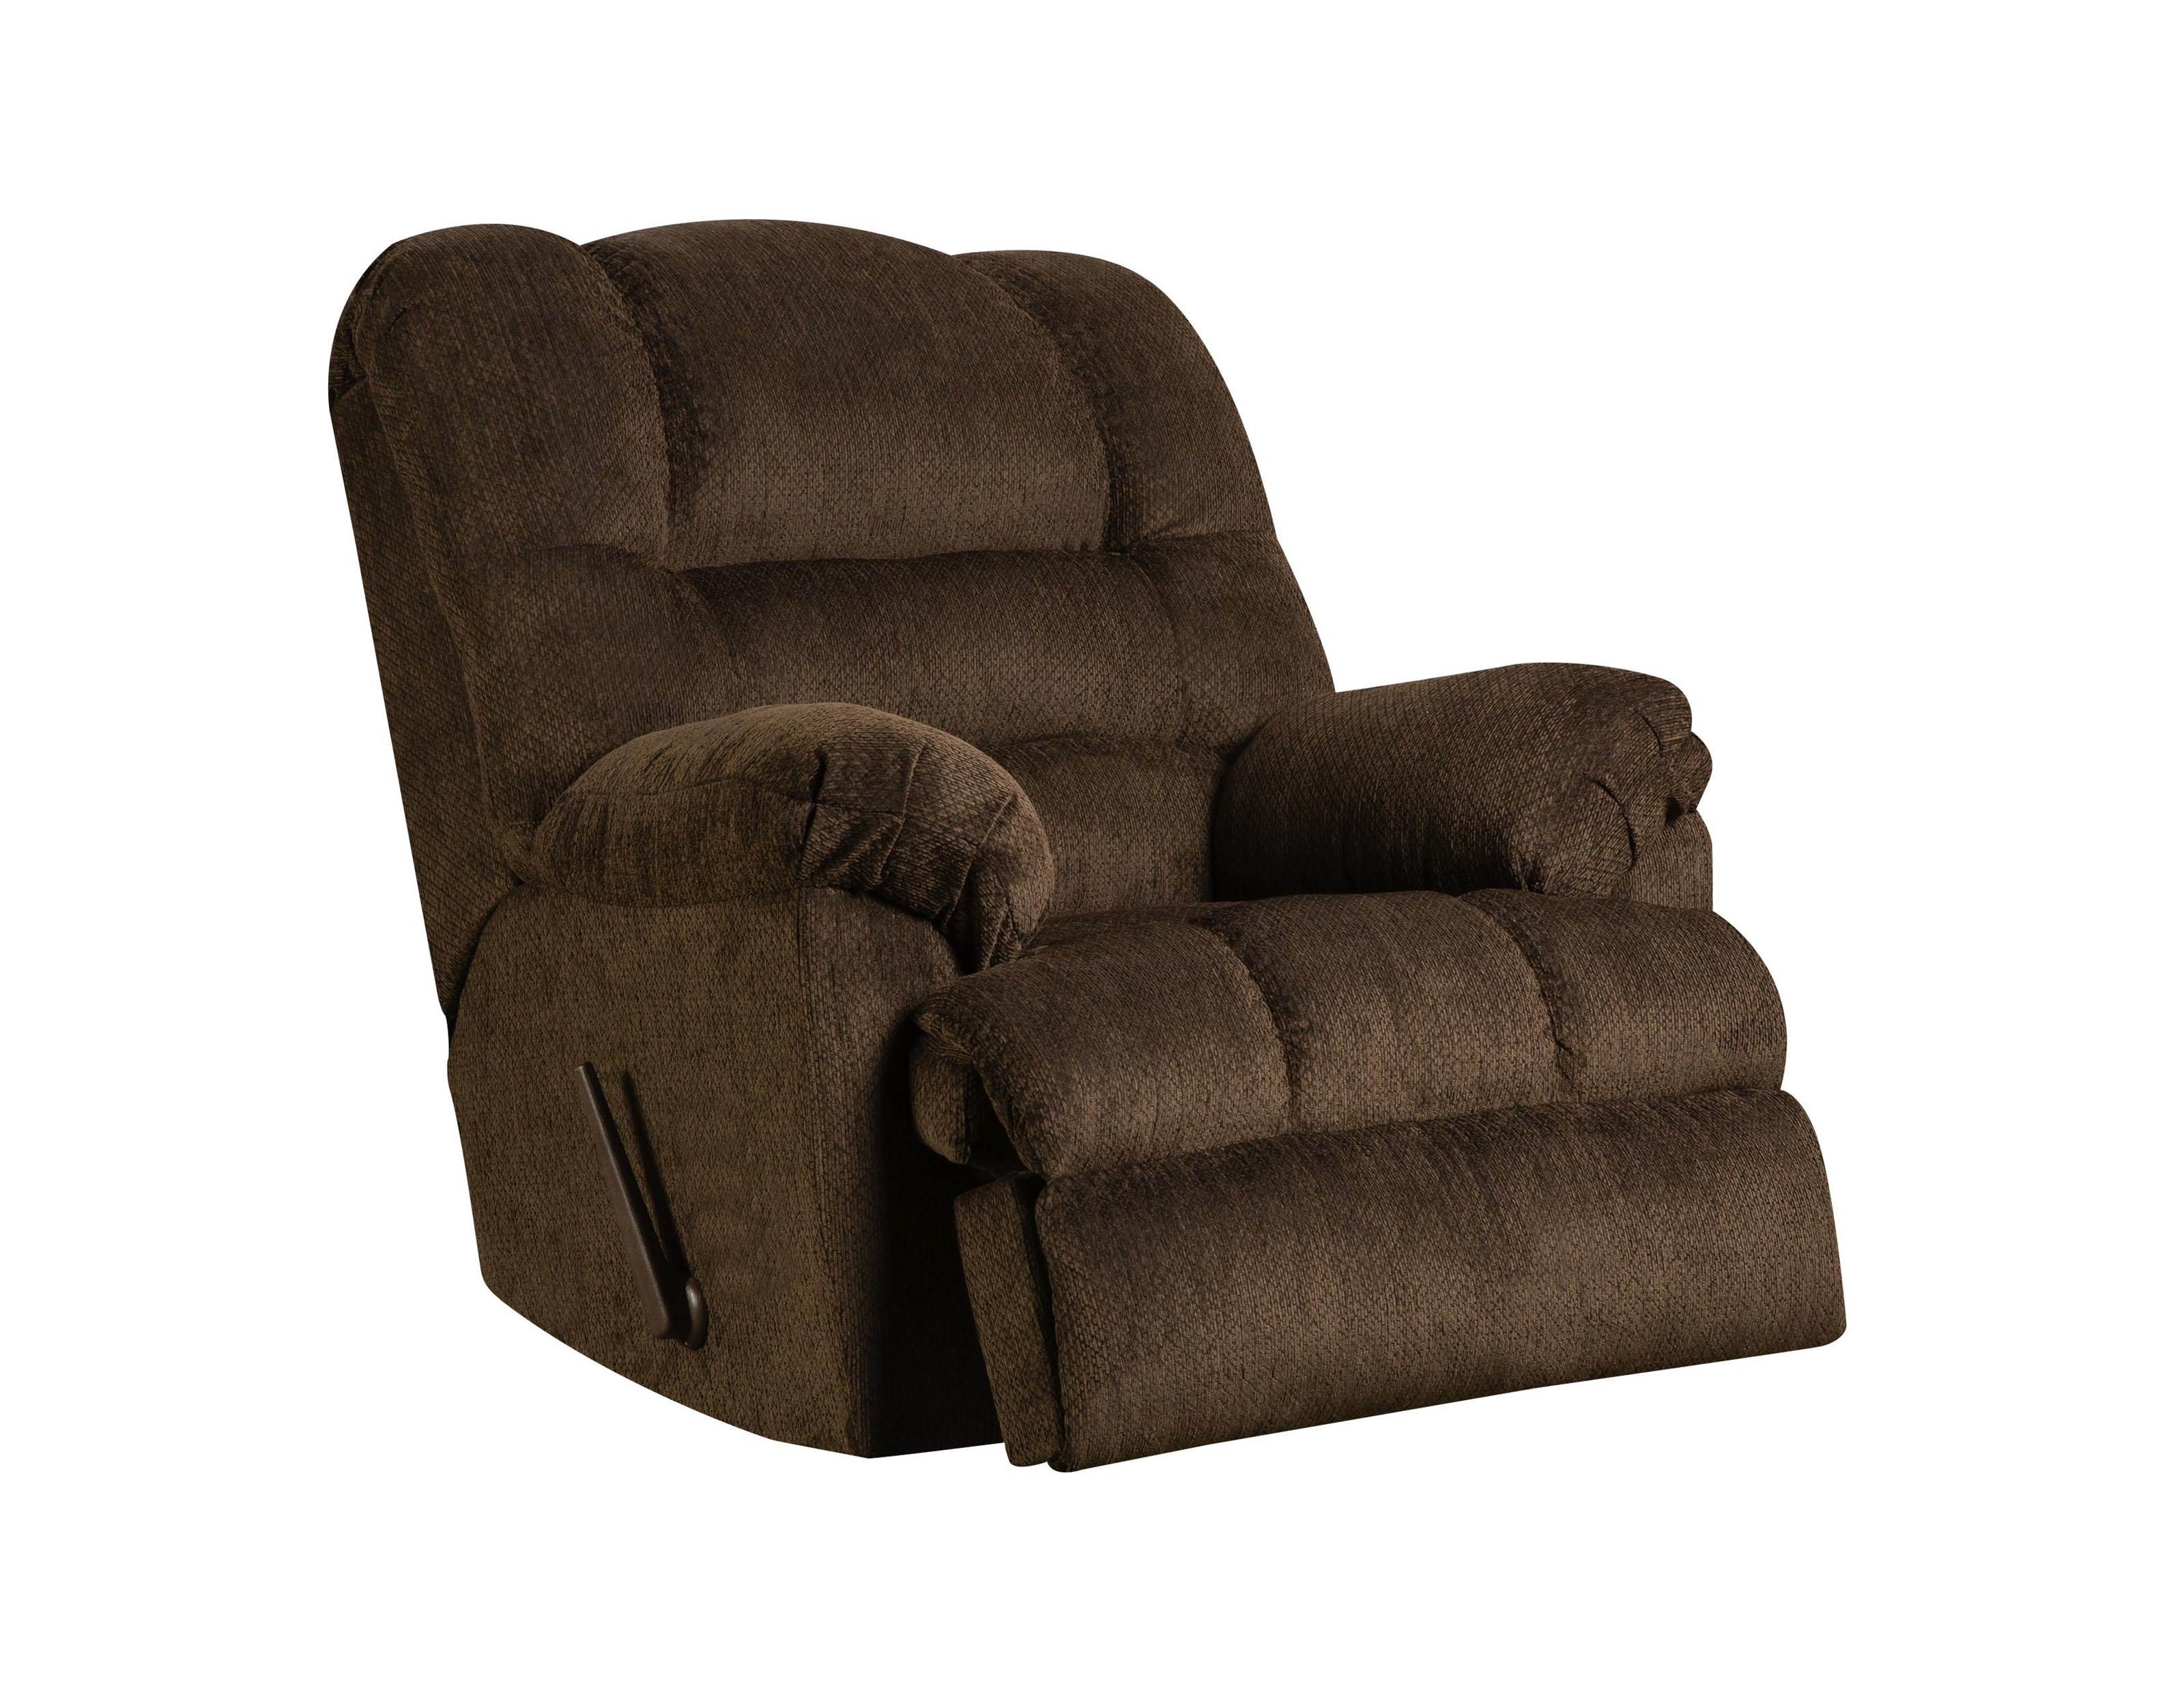 Simmons Upholstery 600 M Casual Oversized Power Rocker Recliner - Item Number: 600